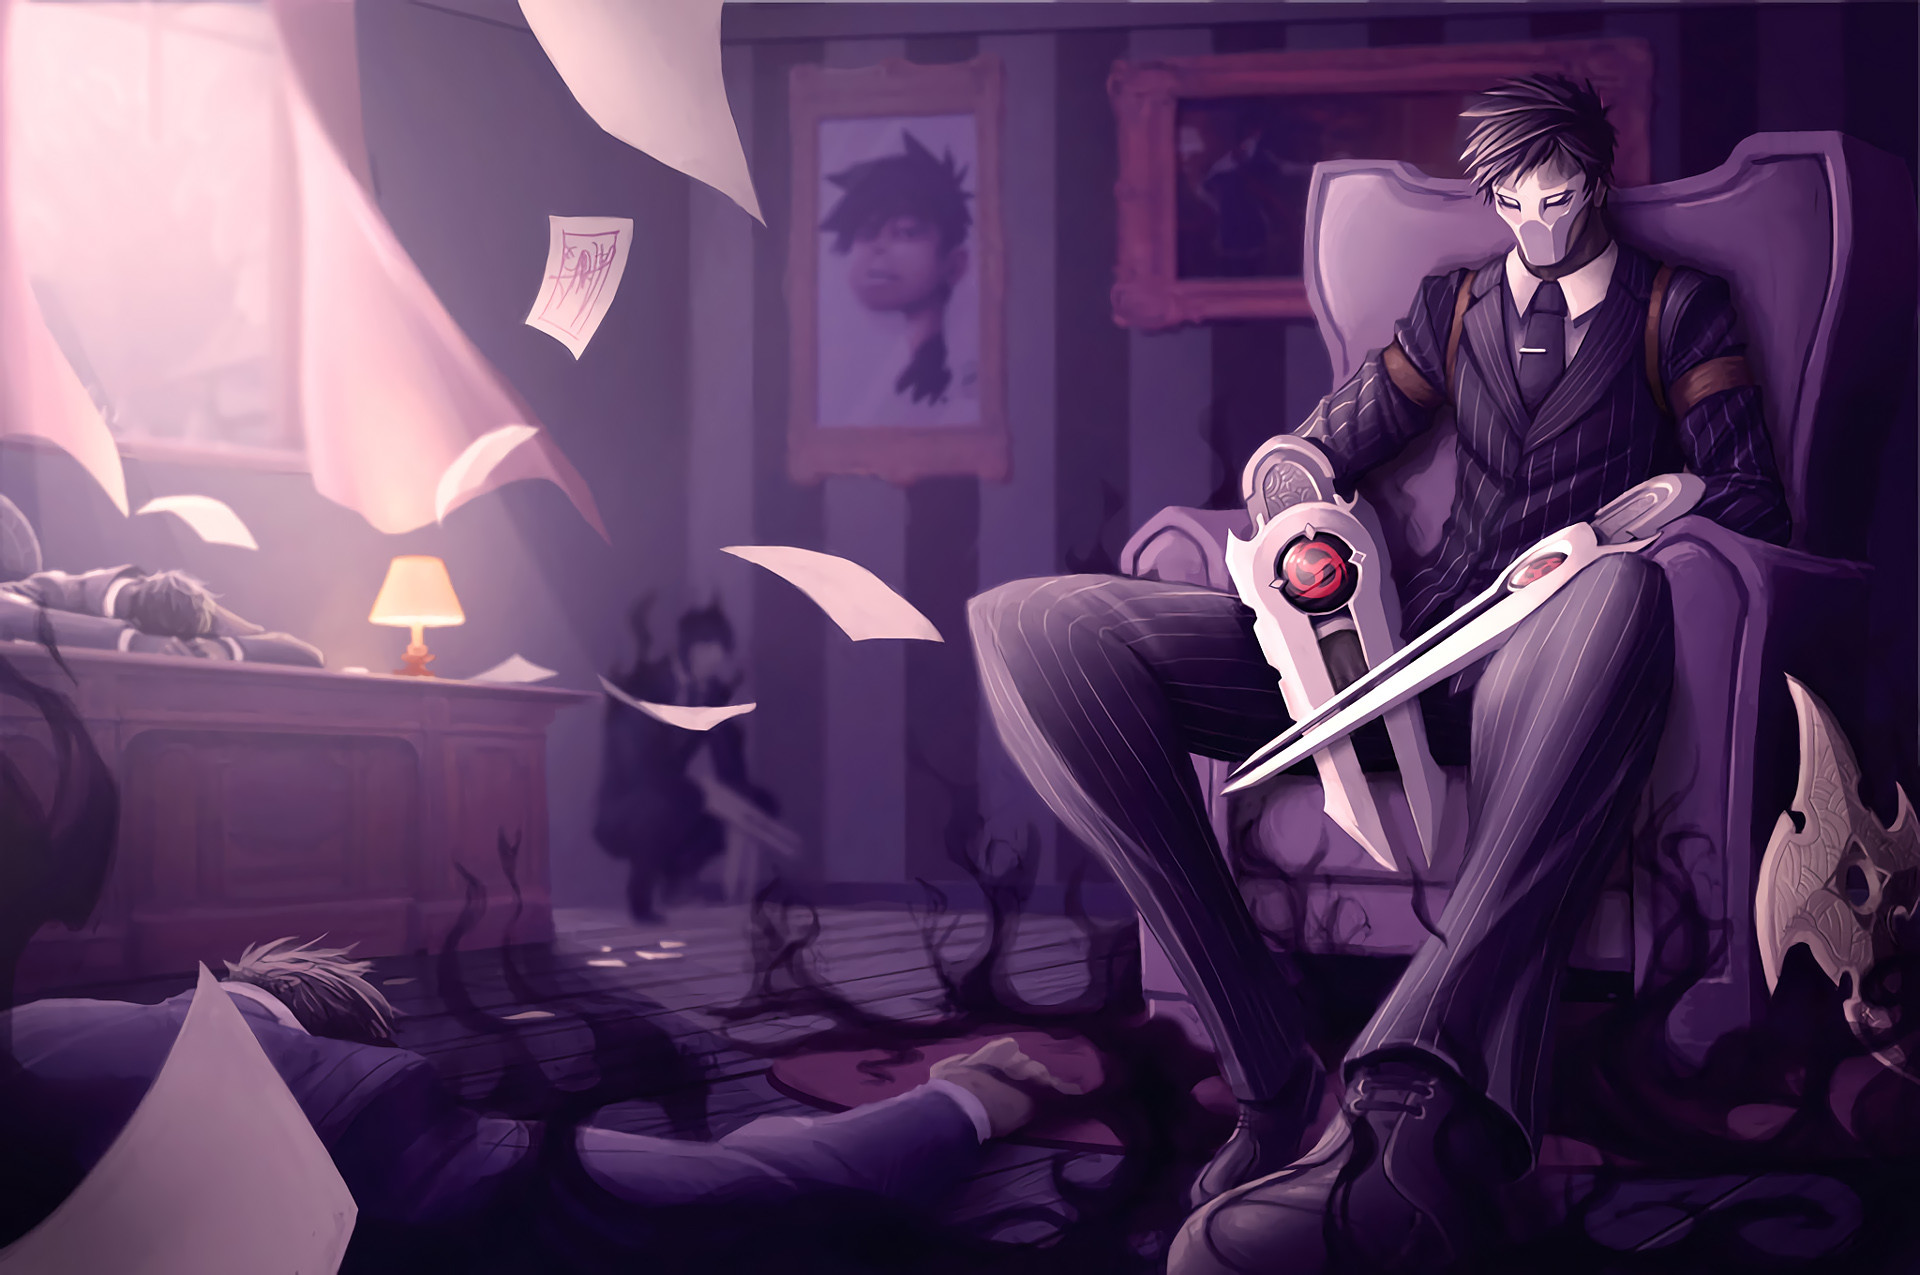 Res: 1920x1275, ZEDSHADOW0 images Hitman ZED HD wallpaper and background photos